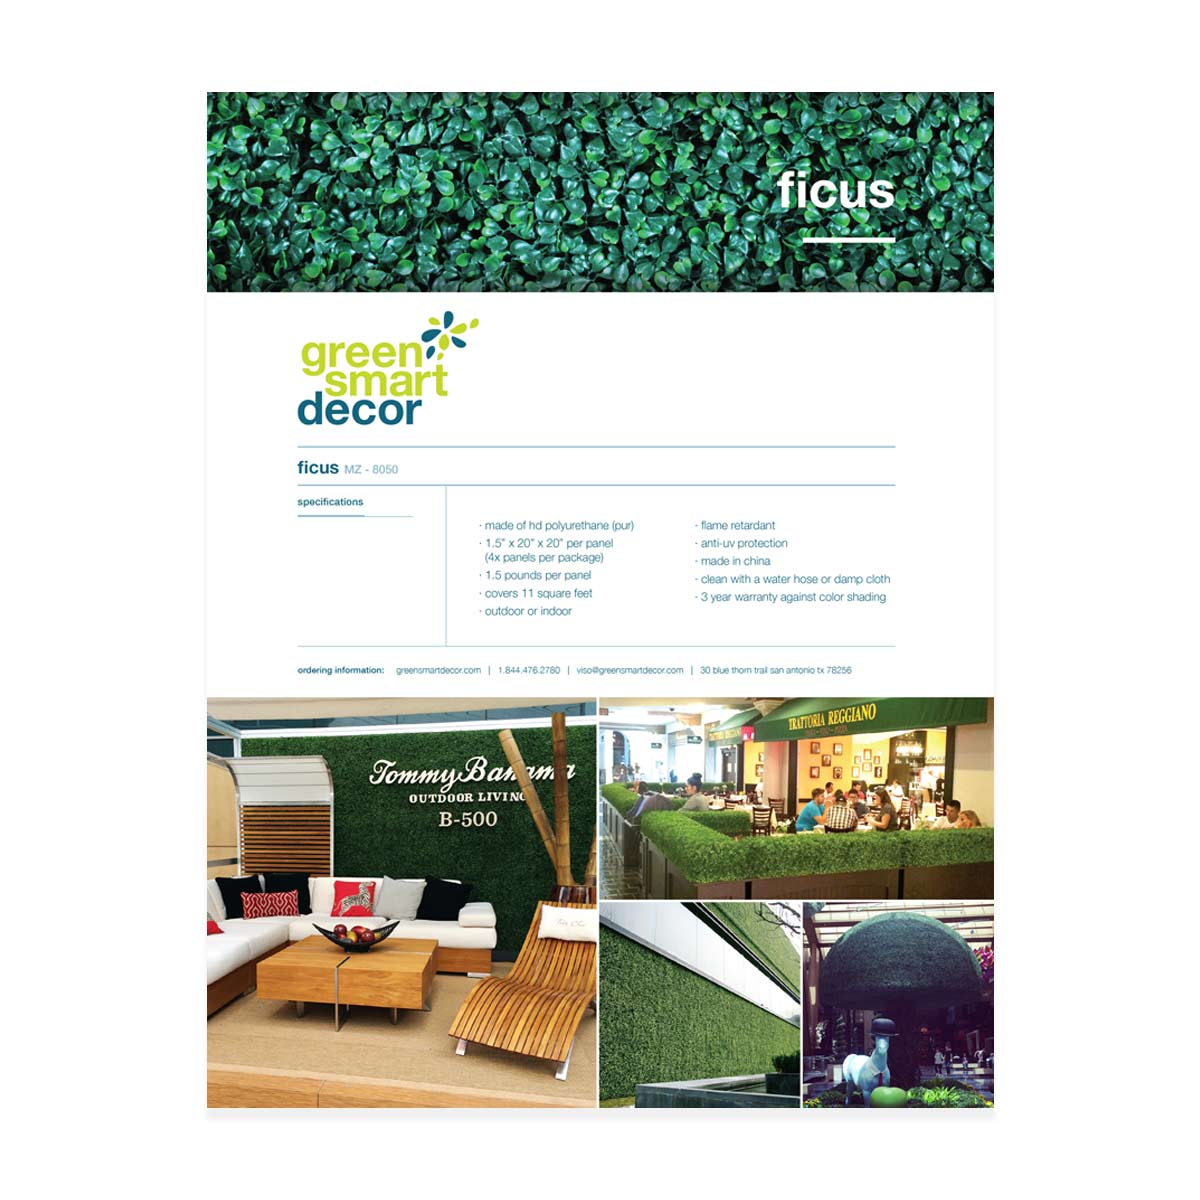 Greensmart catalog ficus page